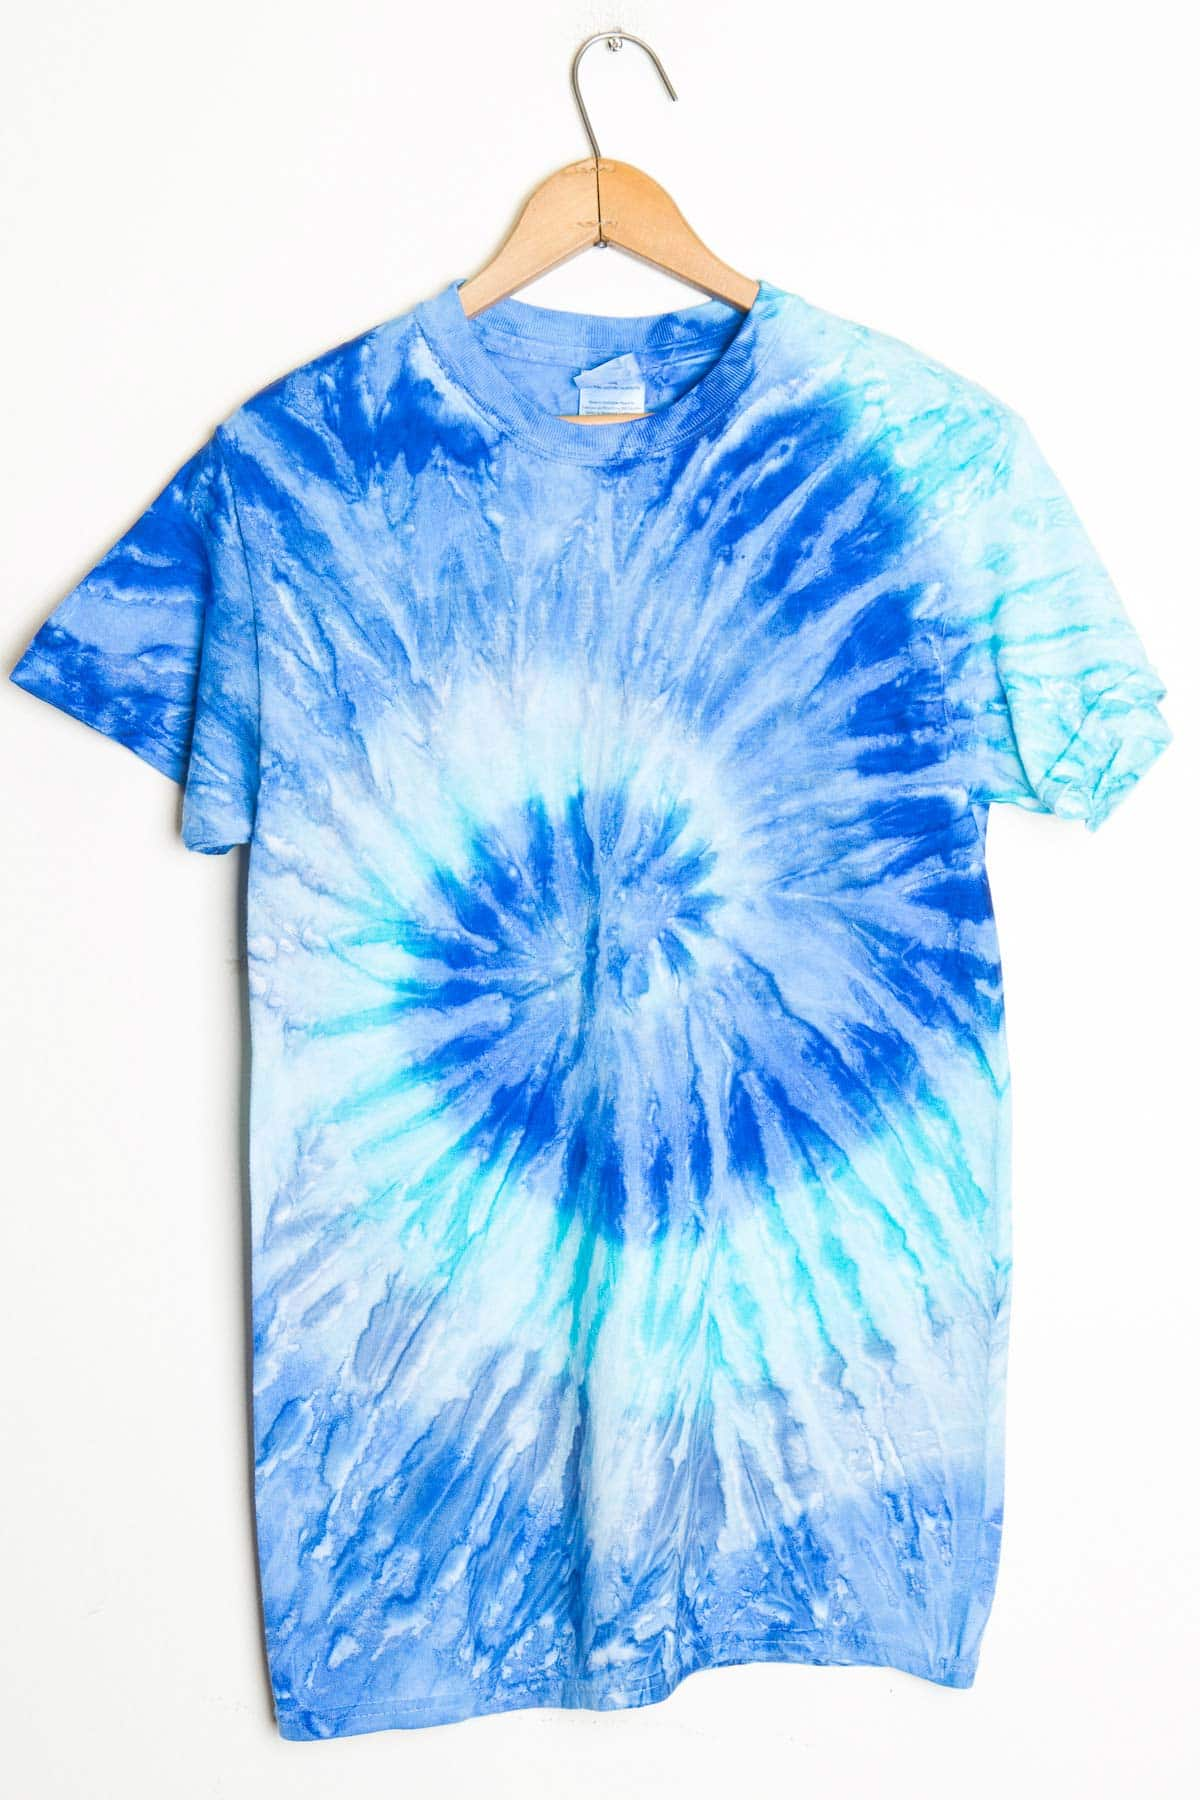 blue and white tie dye shirt kamos t shirt. Black Bedroom Furniture Sets. Home Design Ideas